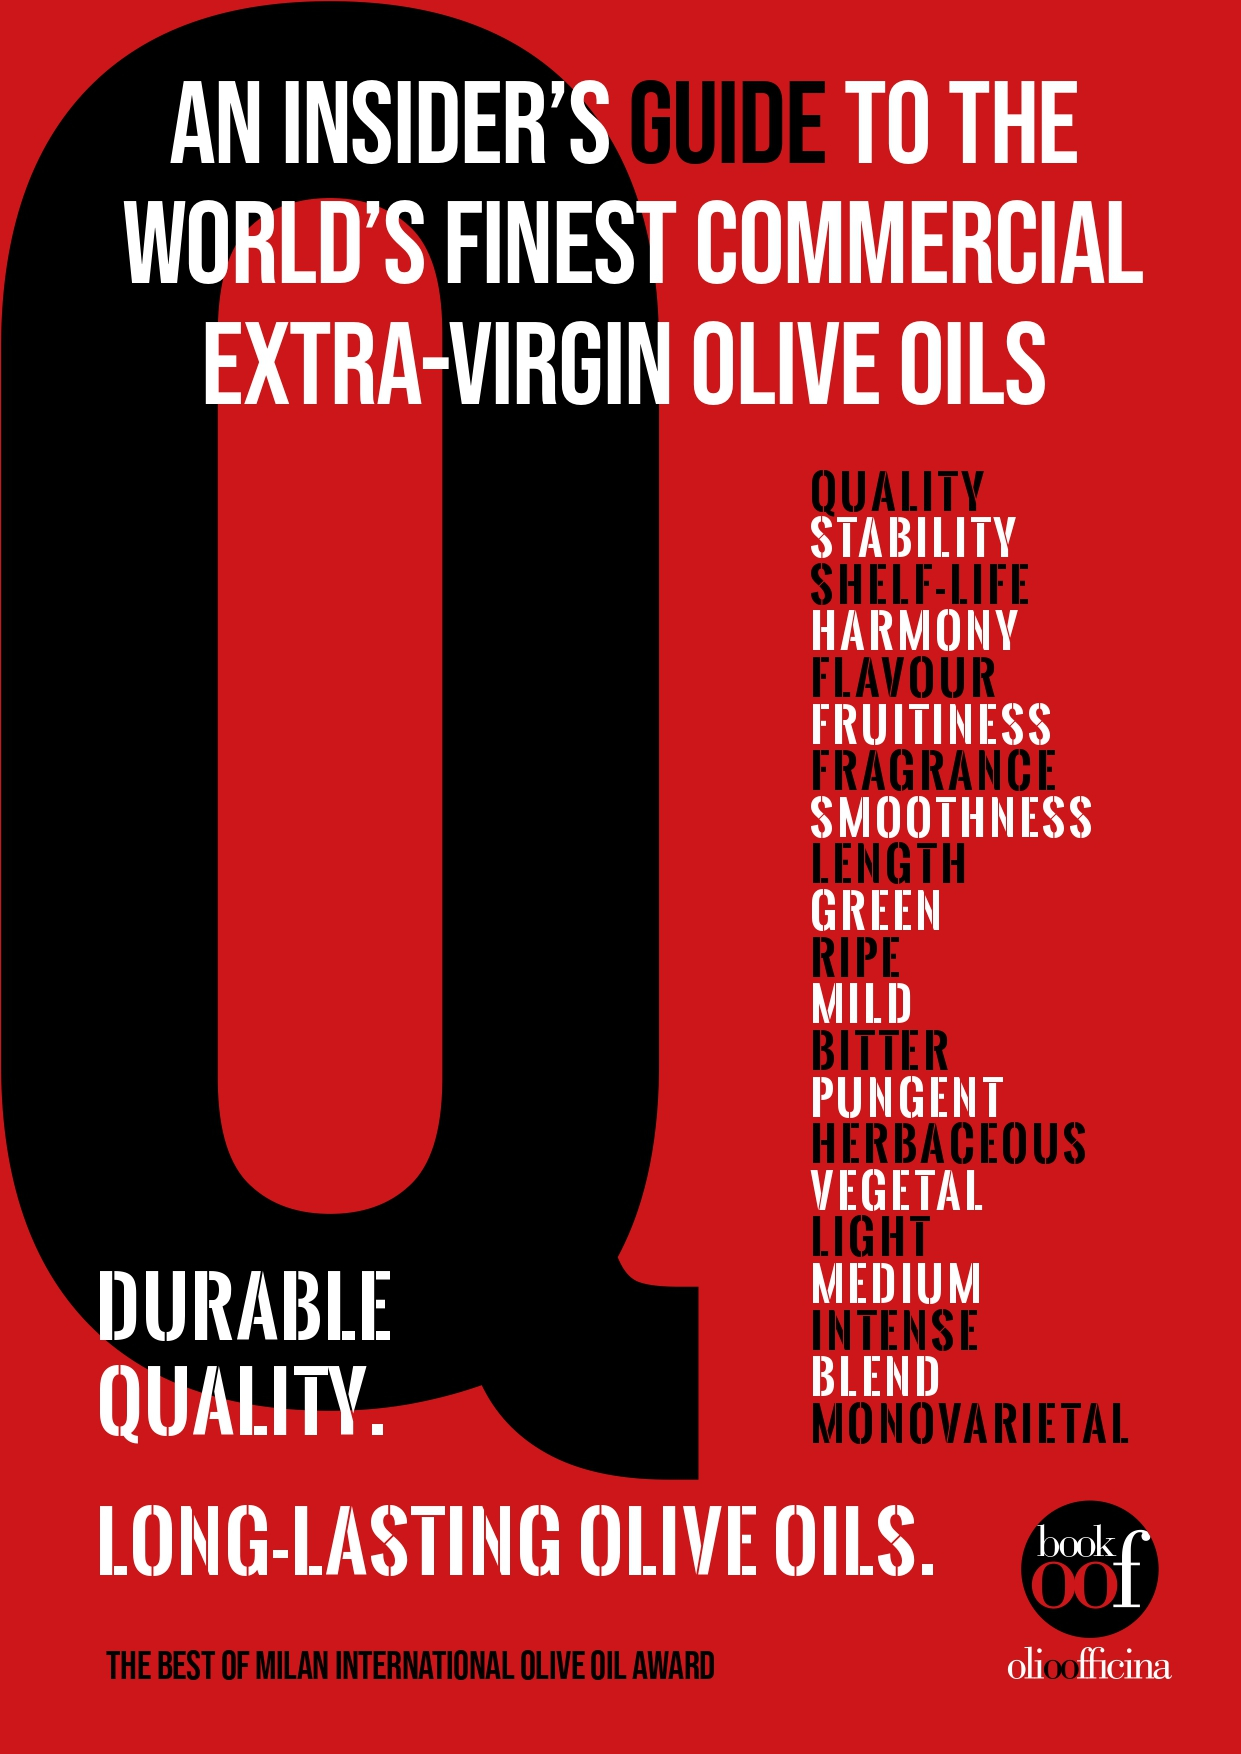 How can an Insider's guide to the world's finest commercial Extra-Virgin Olive Oils be Written?